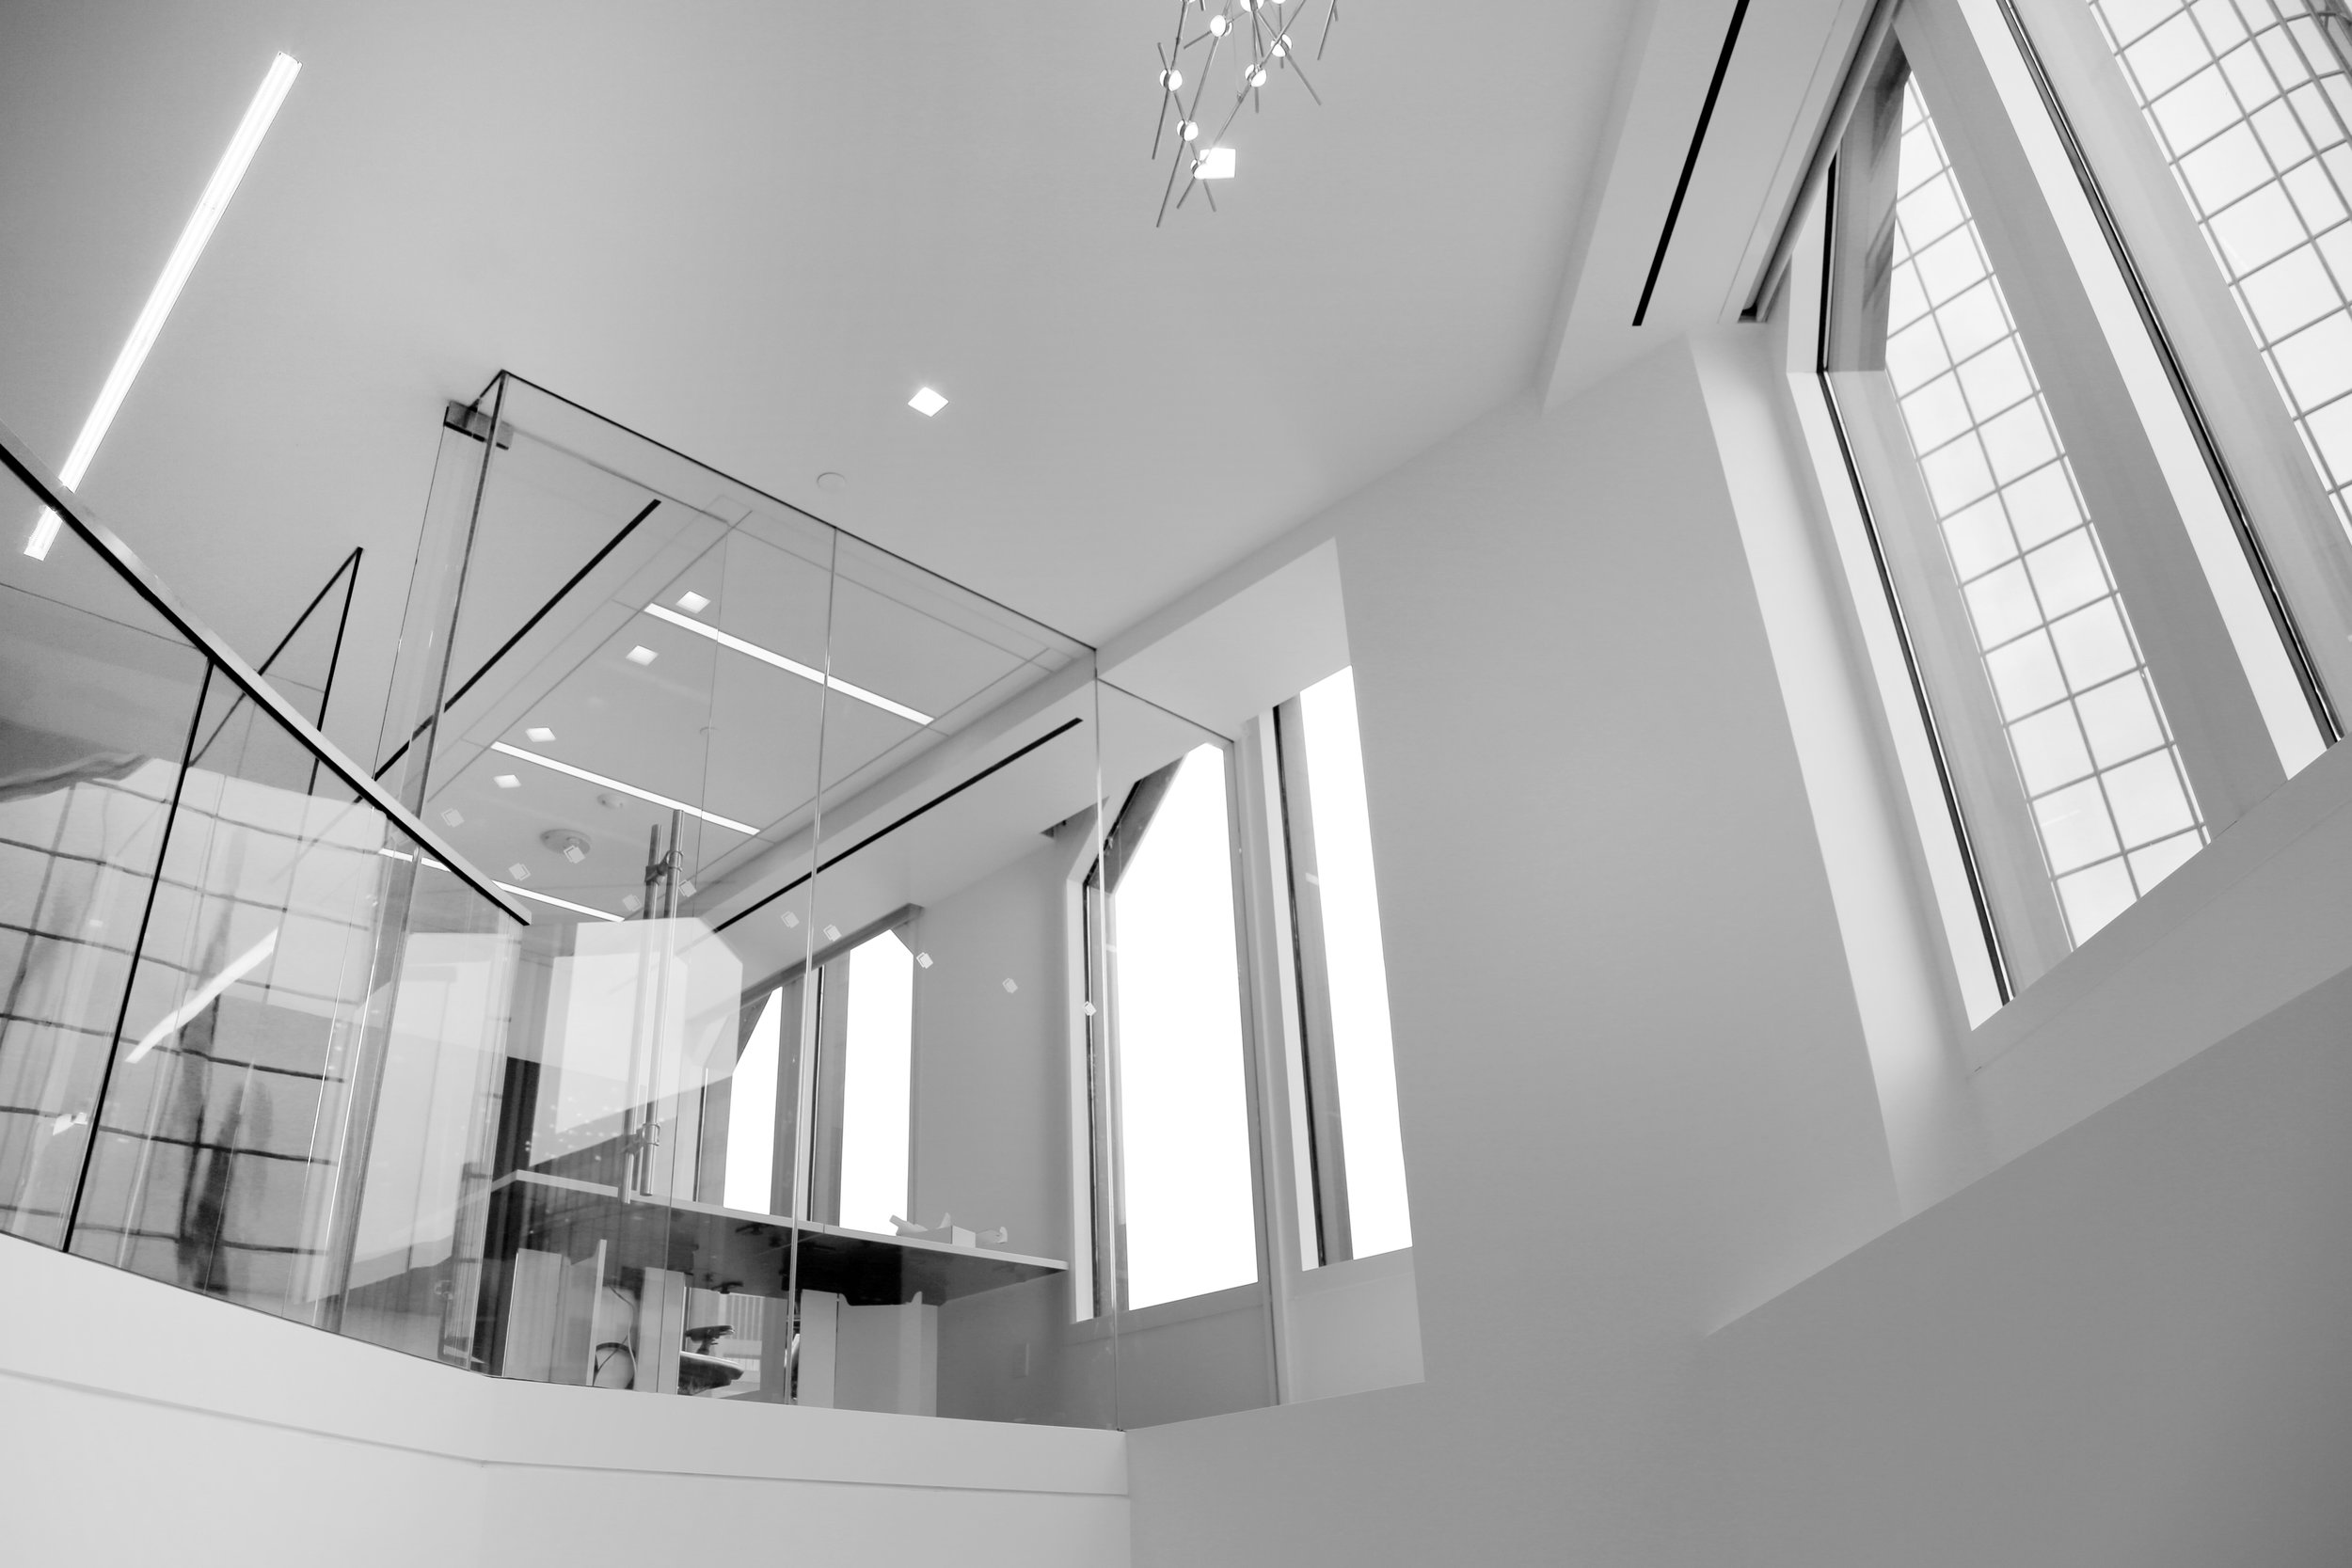 Frameless Glass Office Wall System View from Below - Spaceworks AI.jpg